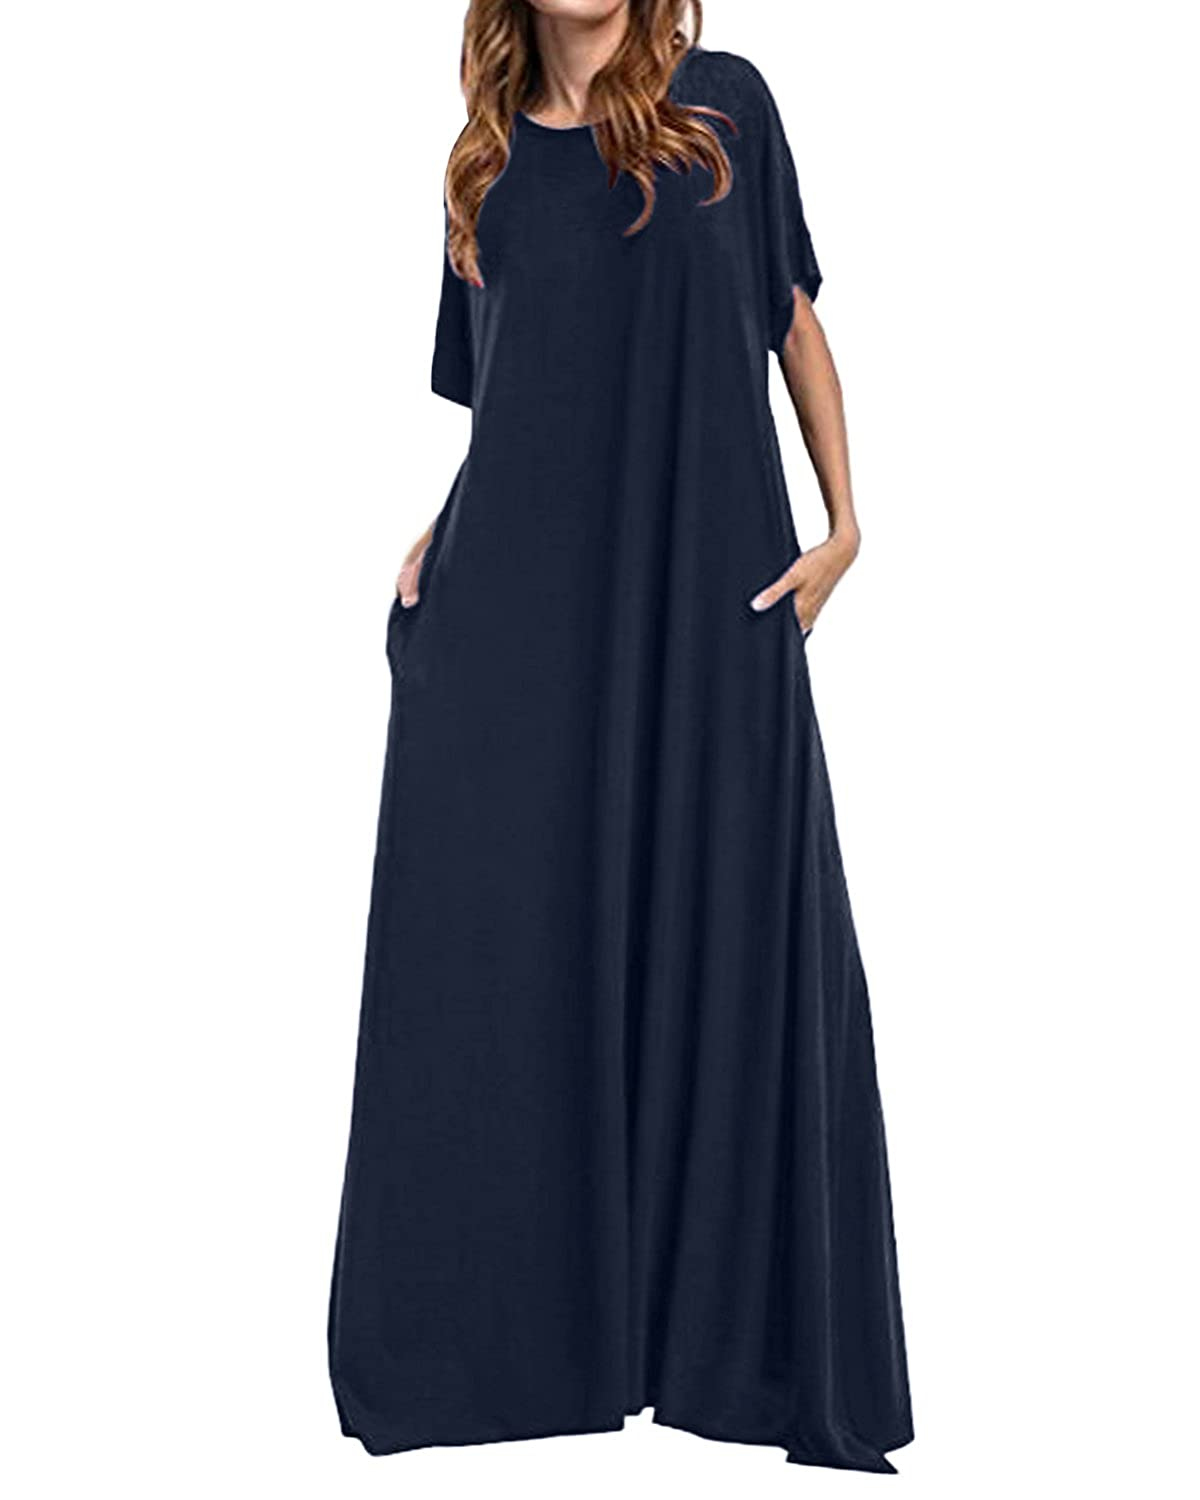 7aa6deb6656 Kidsform Women Maxi Dresses Short Sleeve Loose Plain Casual Long Dress With  Pockets. Casual Style